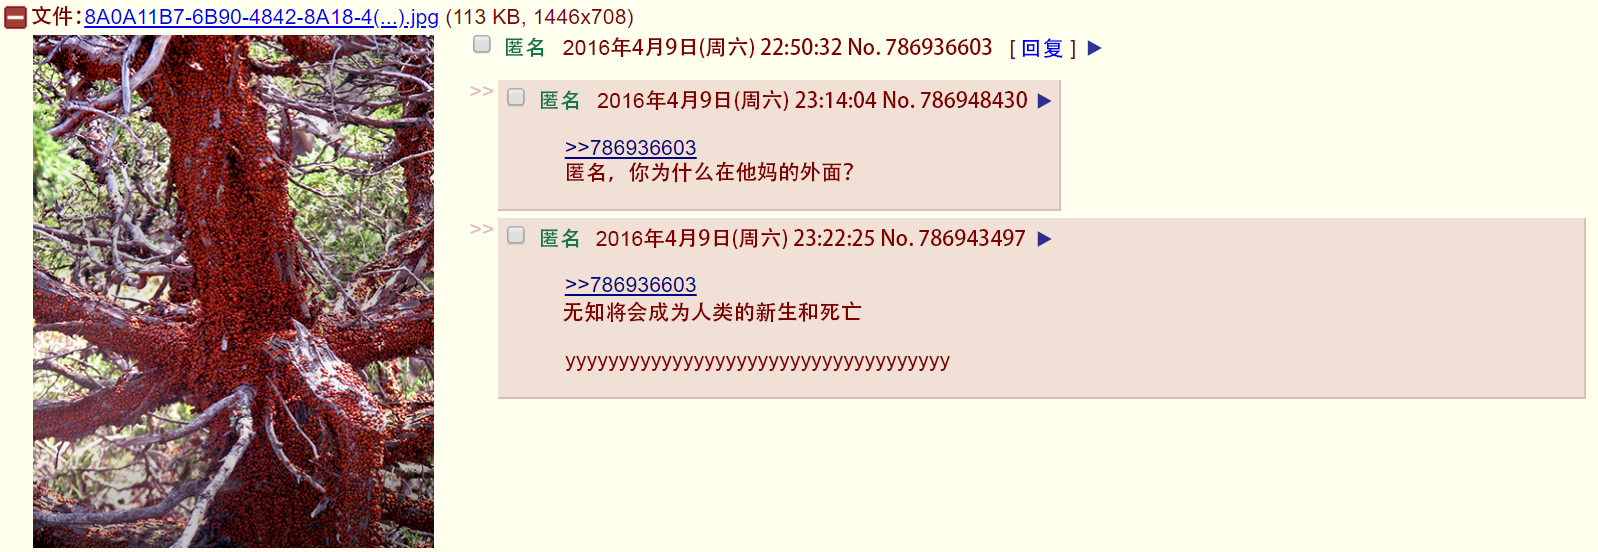 4chan-12-3.png